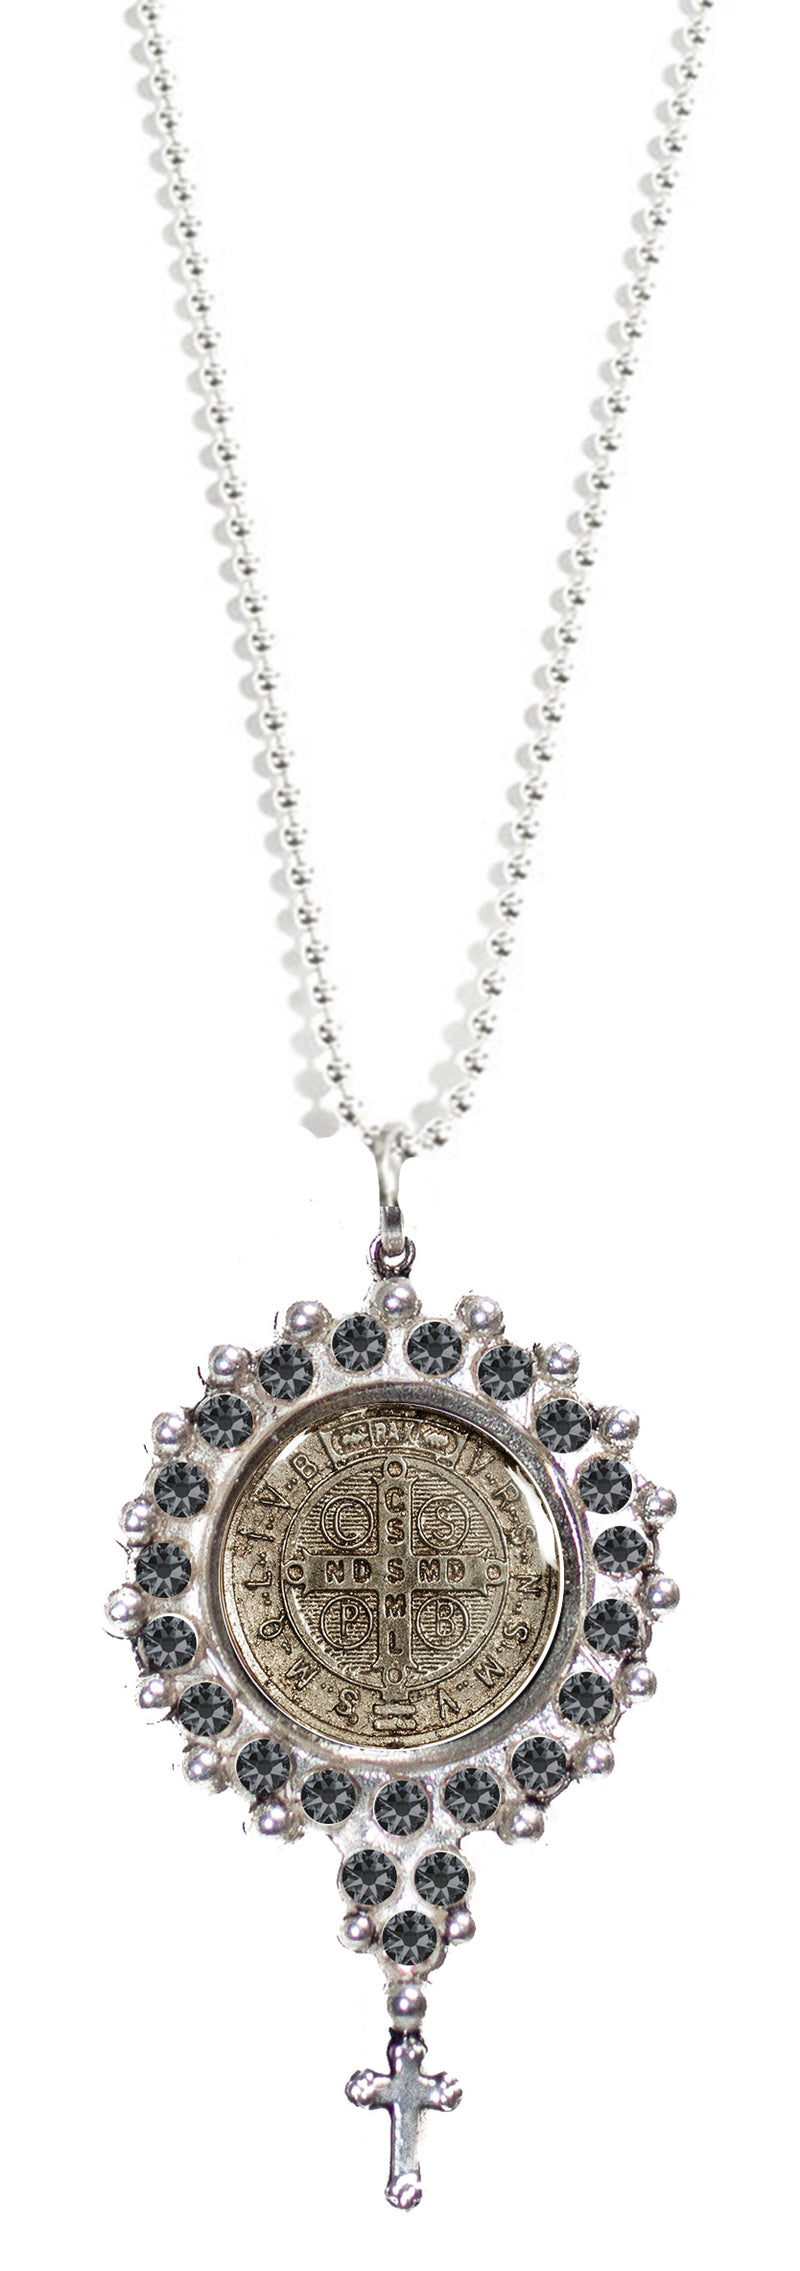 "Fay Spirit Charm Necklace - San Benito - 34"" Chain"